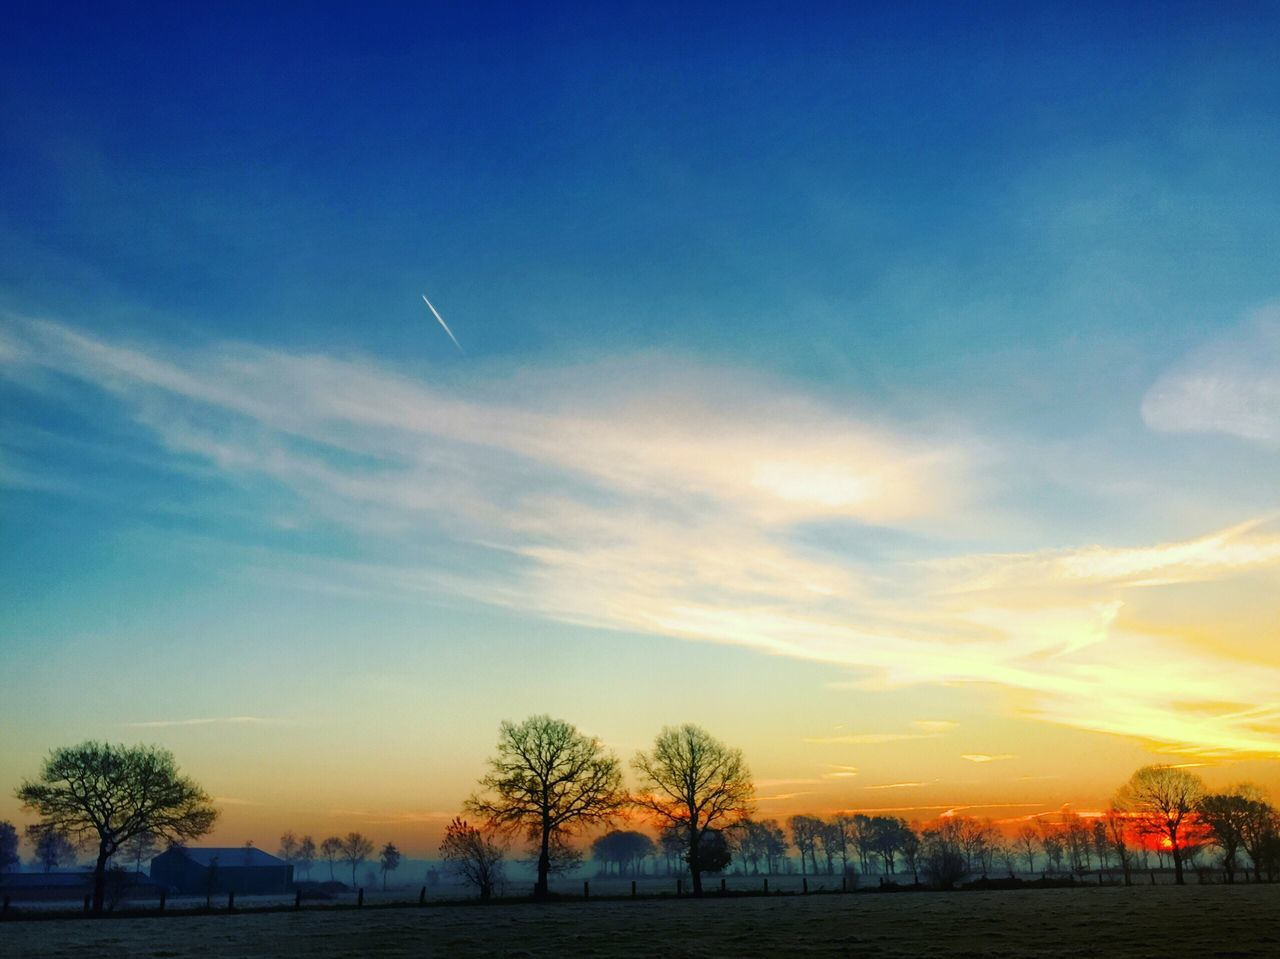 Countryside landscape at sunrise Beauty In Nature Cold Temperature Scenics Nature Winter Sky Tranquil Scene Sunset Tranquility Tree Snow Cloud - Sky Silhouette Landscape Outdoors Blue No People Bare Tree Water Vapor Trail